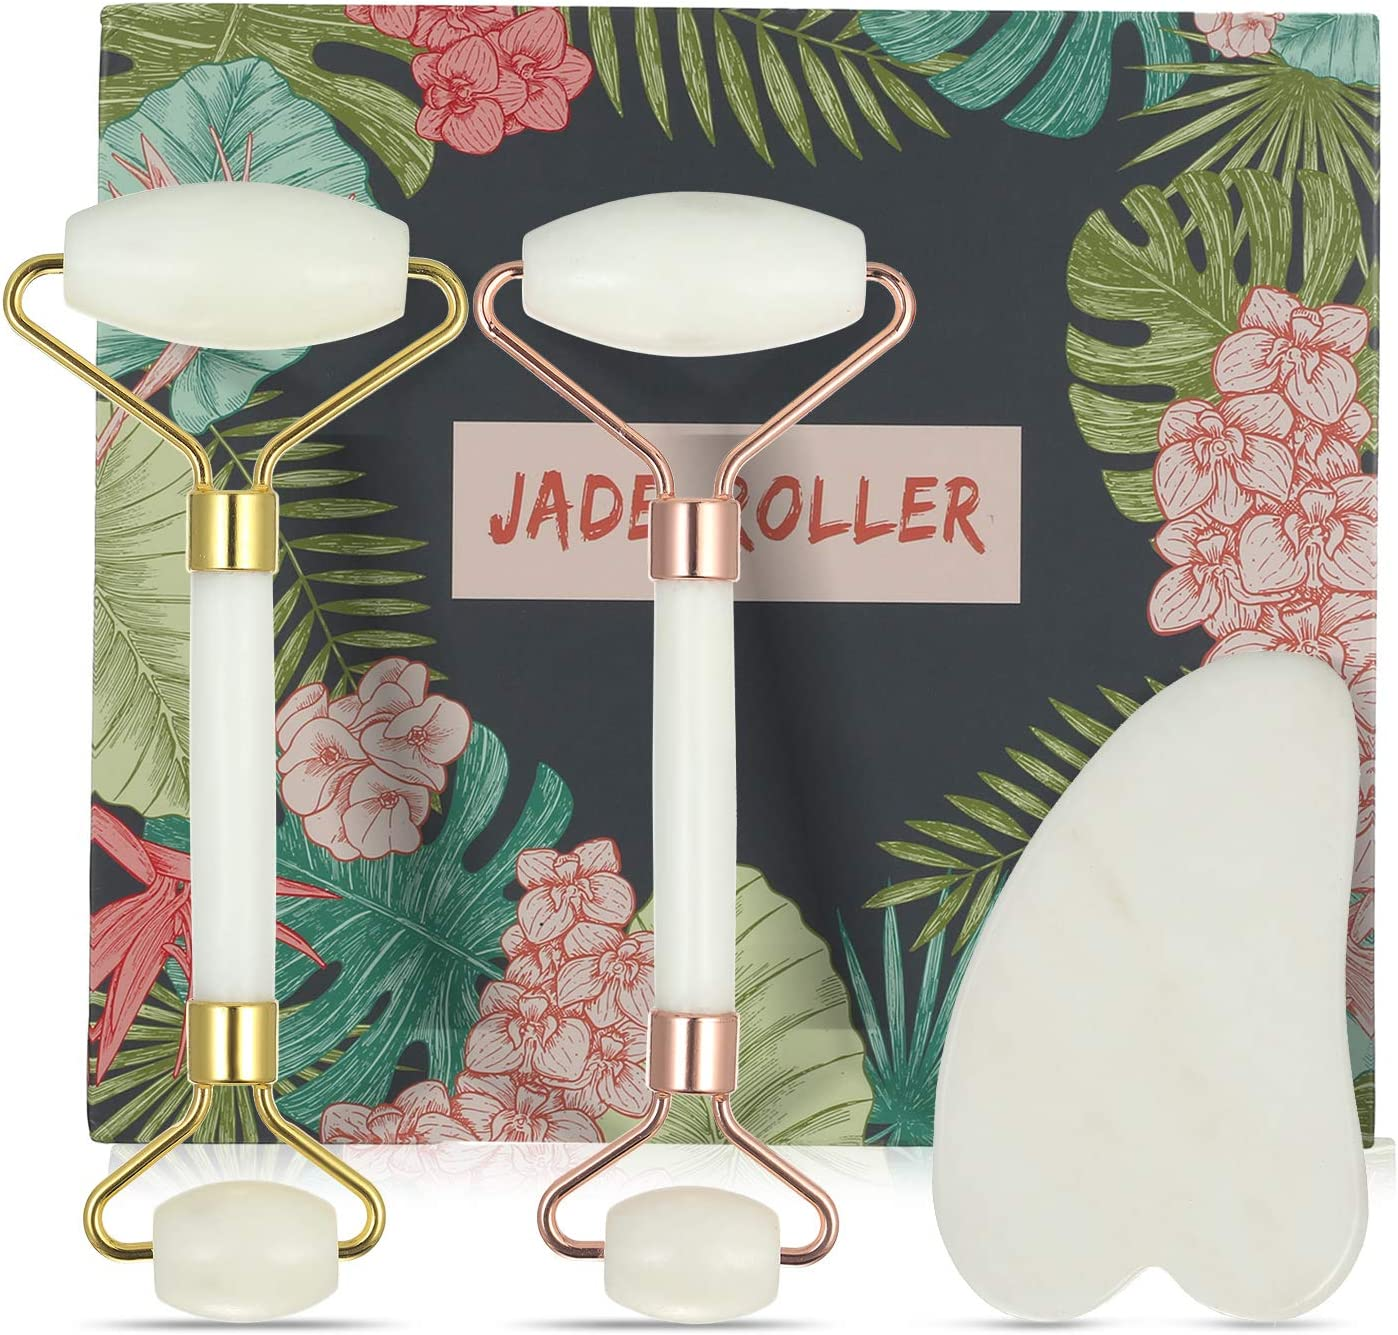 Anself Jade Roller Gua Sha Scraper Set 100% Natural Jade for  Face&Neck&Eye&Body Massager Anti-aging Skin Care Tools Solution Puffy Eyes  Massager: Amazon.co.uk: Beauty